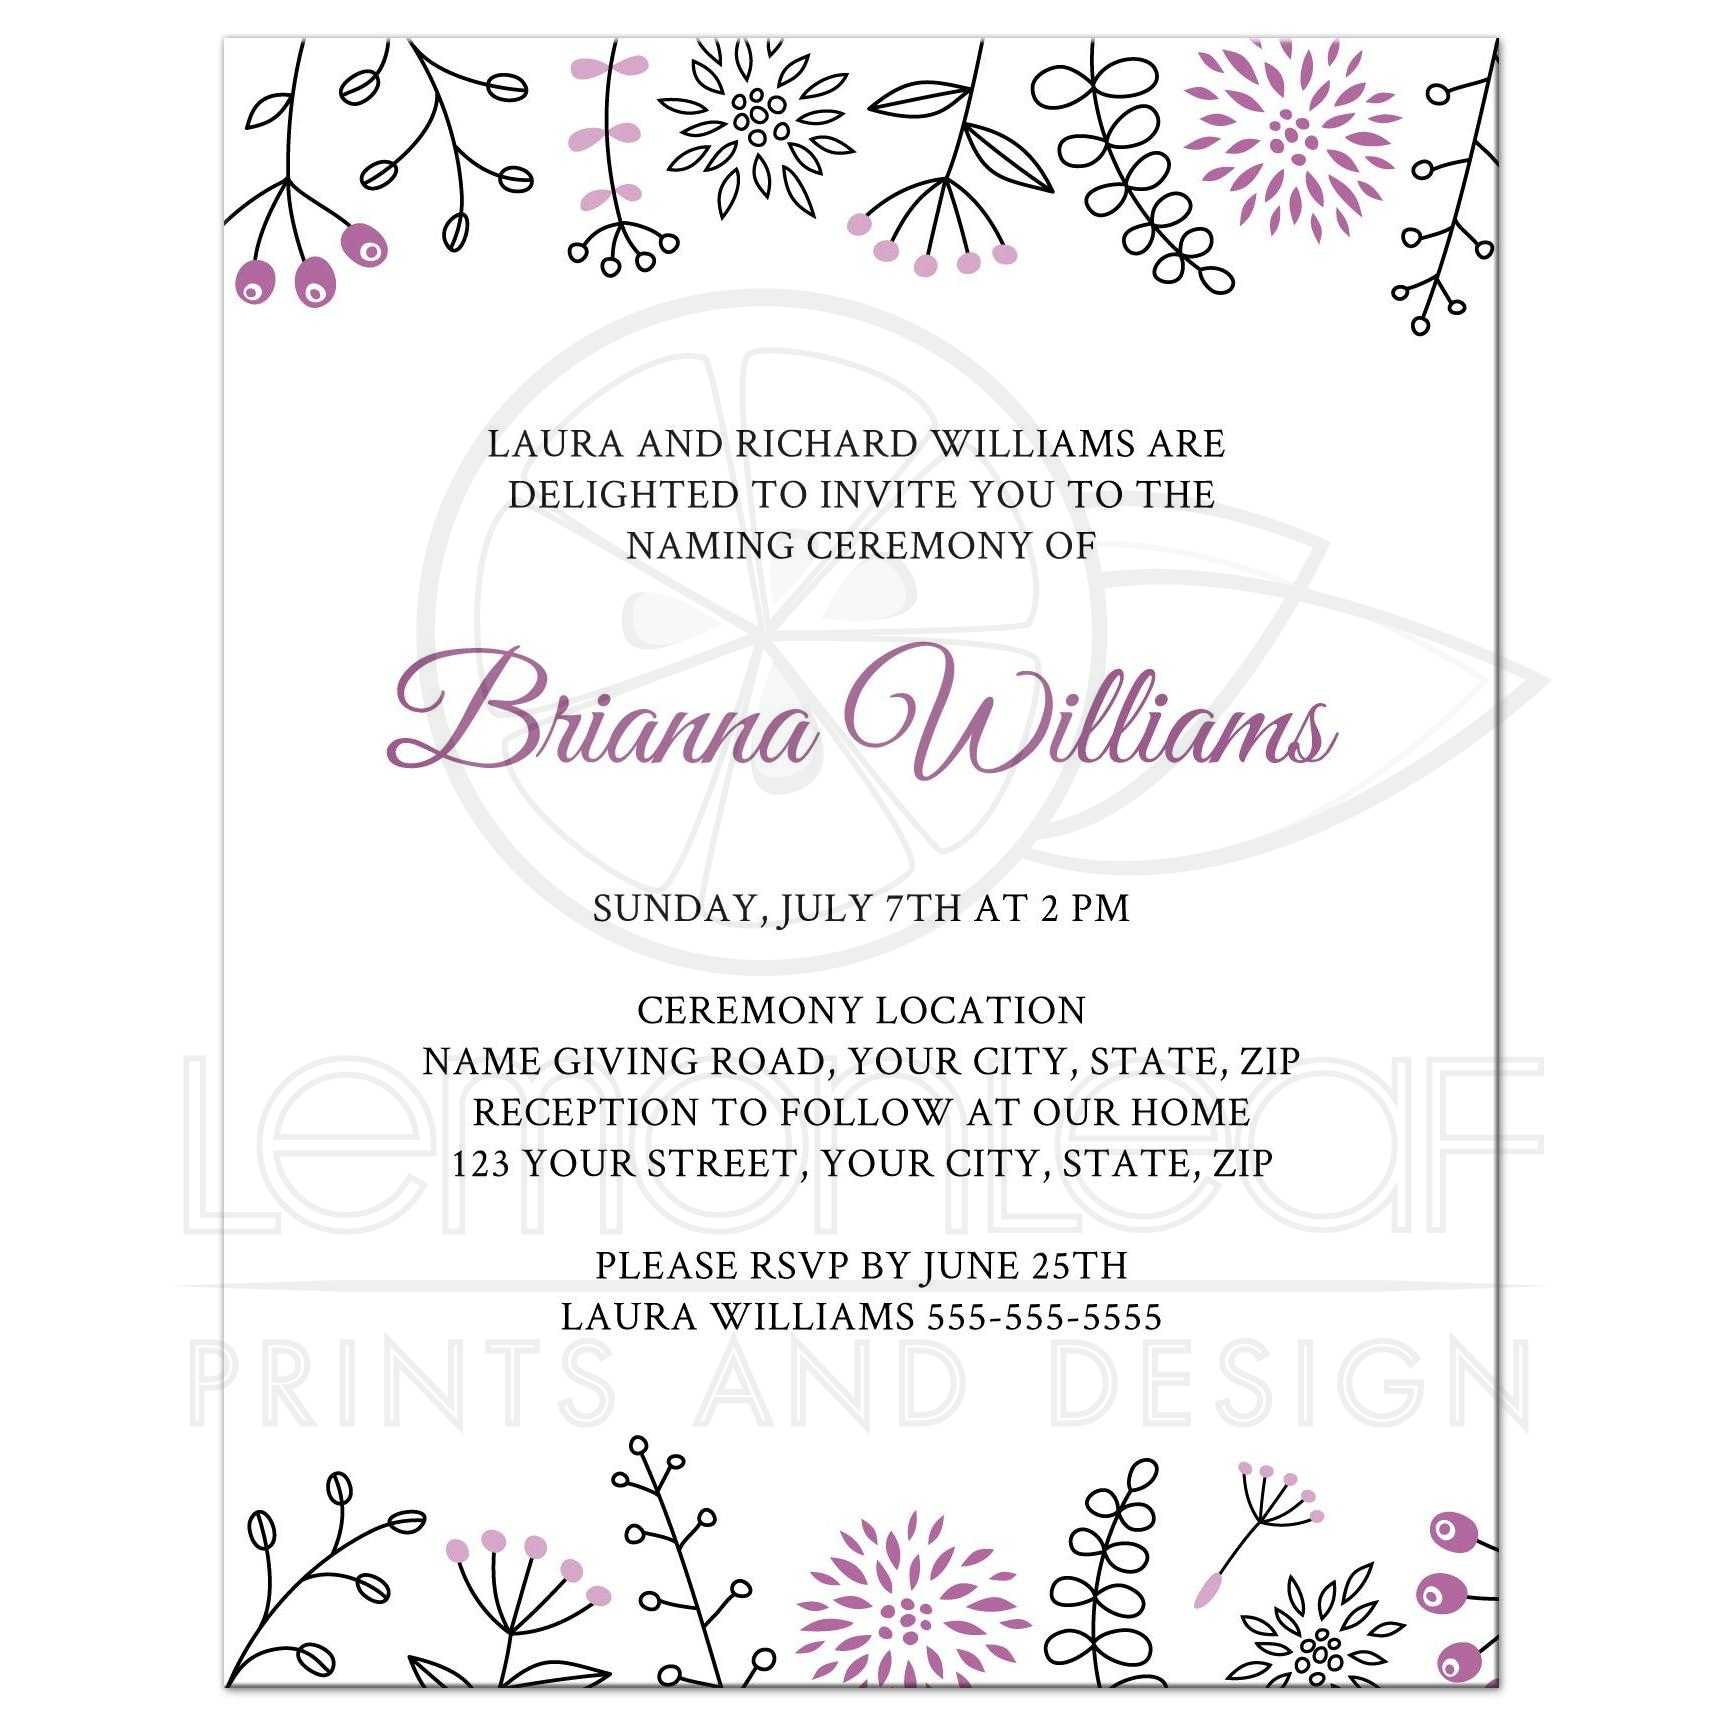 Marvelous Cute Naming Ceremony Invite For Baby Girls With Modern Floral Border Design.